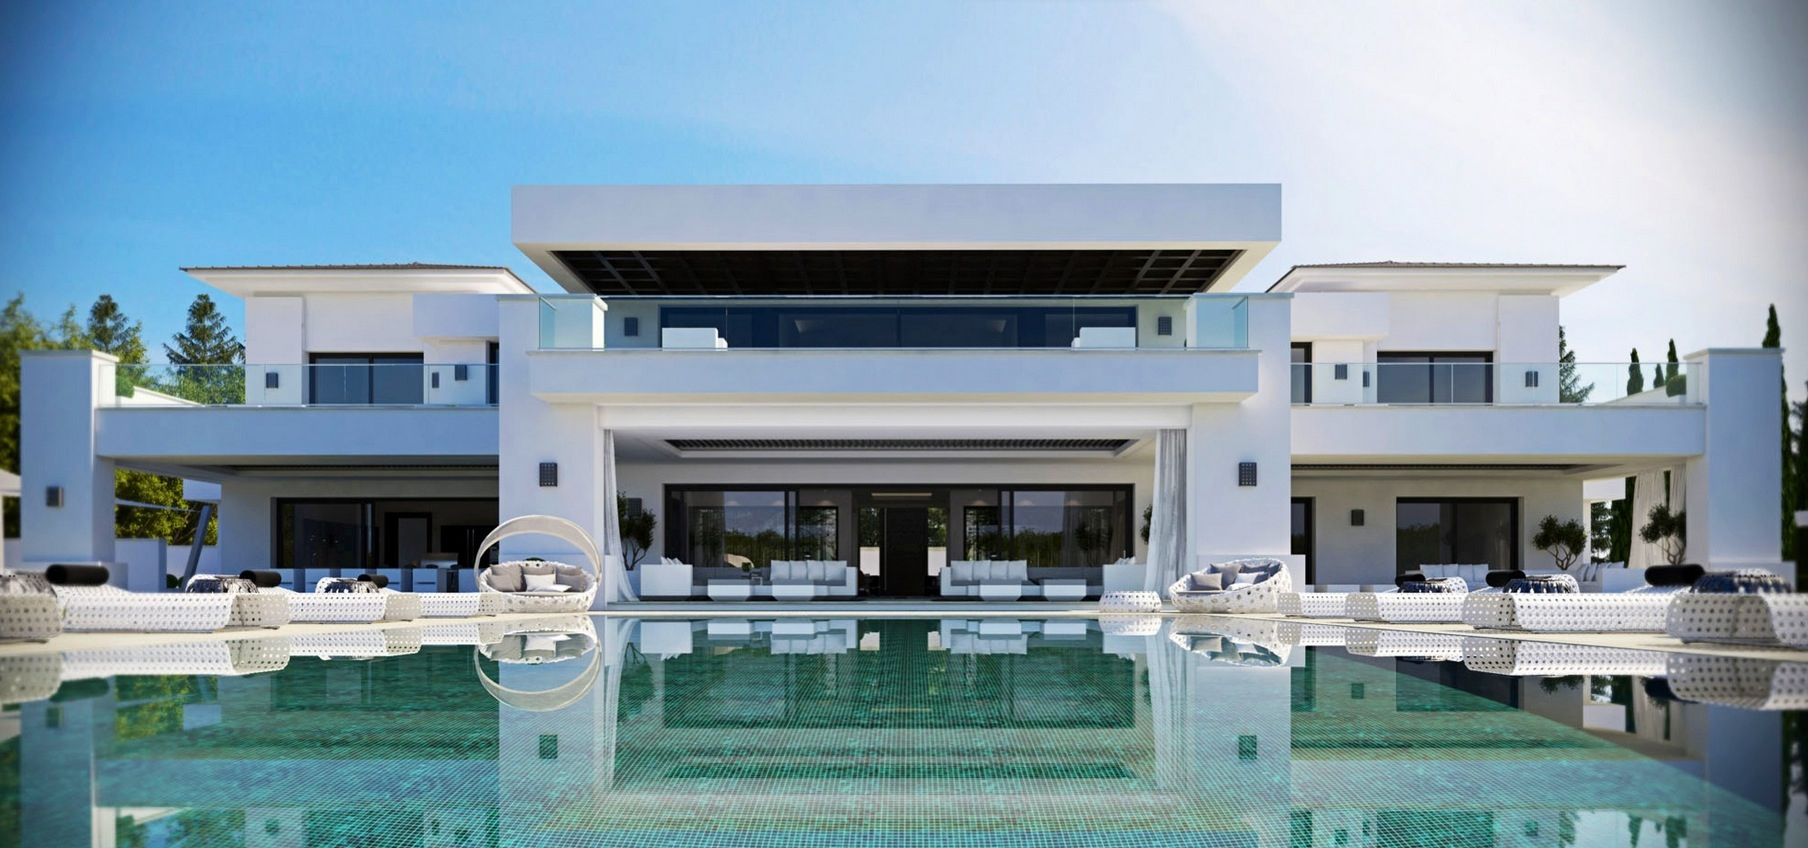 Luxurious 9 bedroom spanish home with indoor outdoor pools for Villa a construire